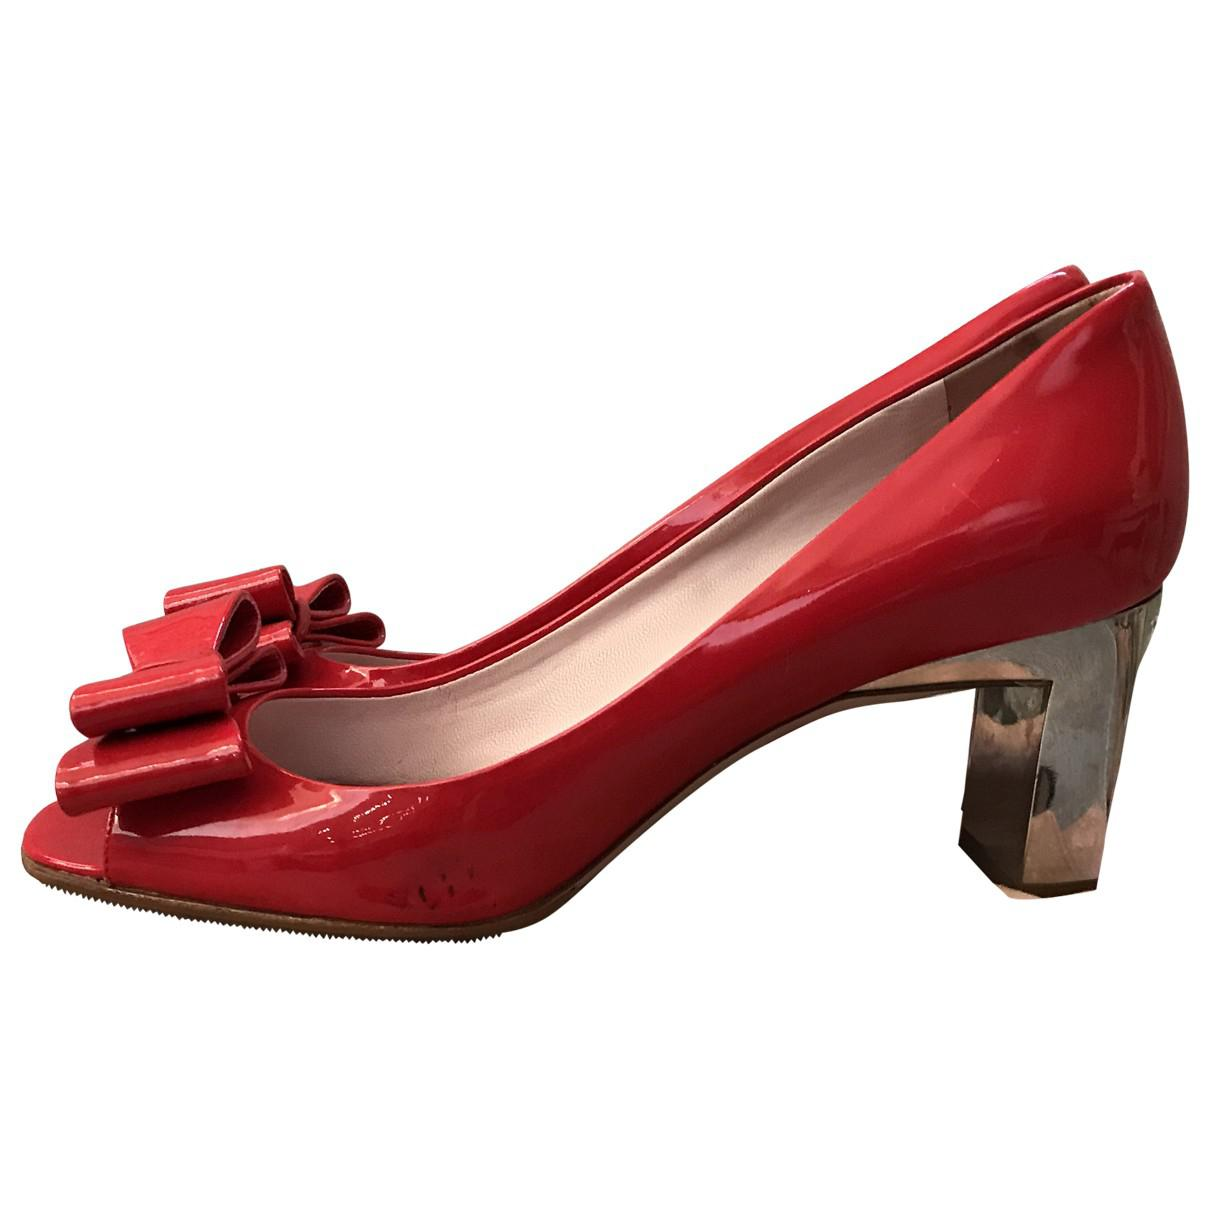 Pre-owned - Patent leather high heel Miu Miu X7yPt7eKXD